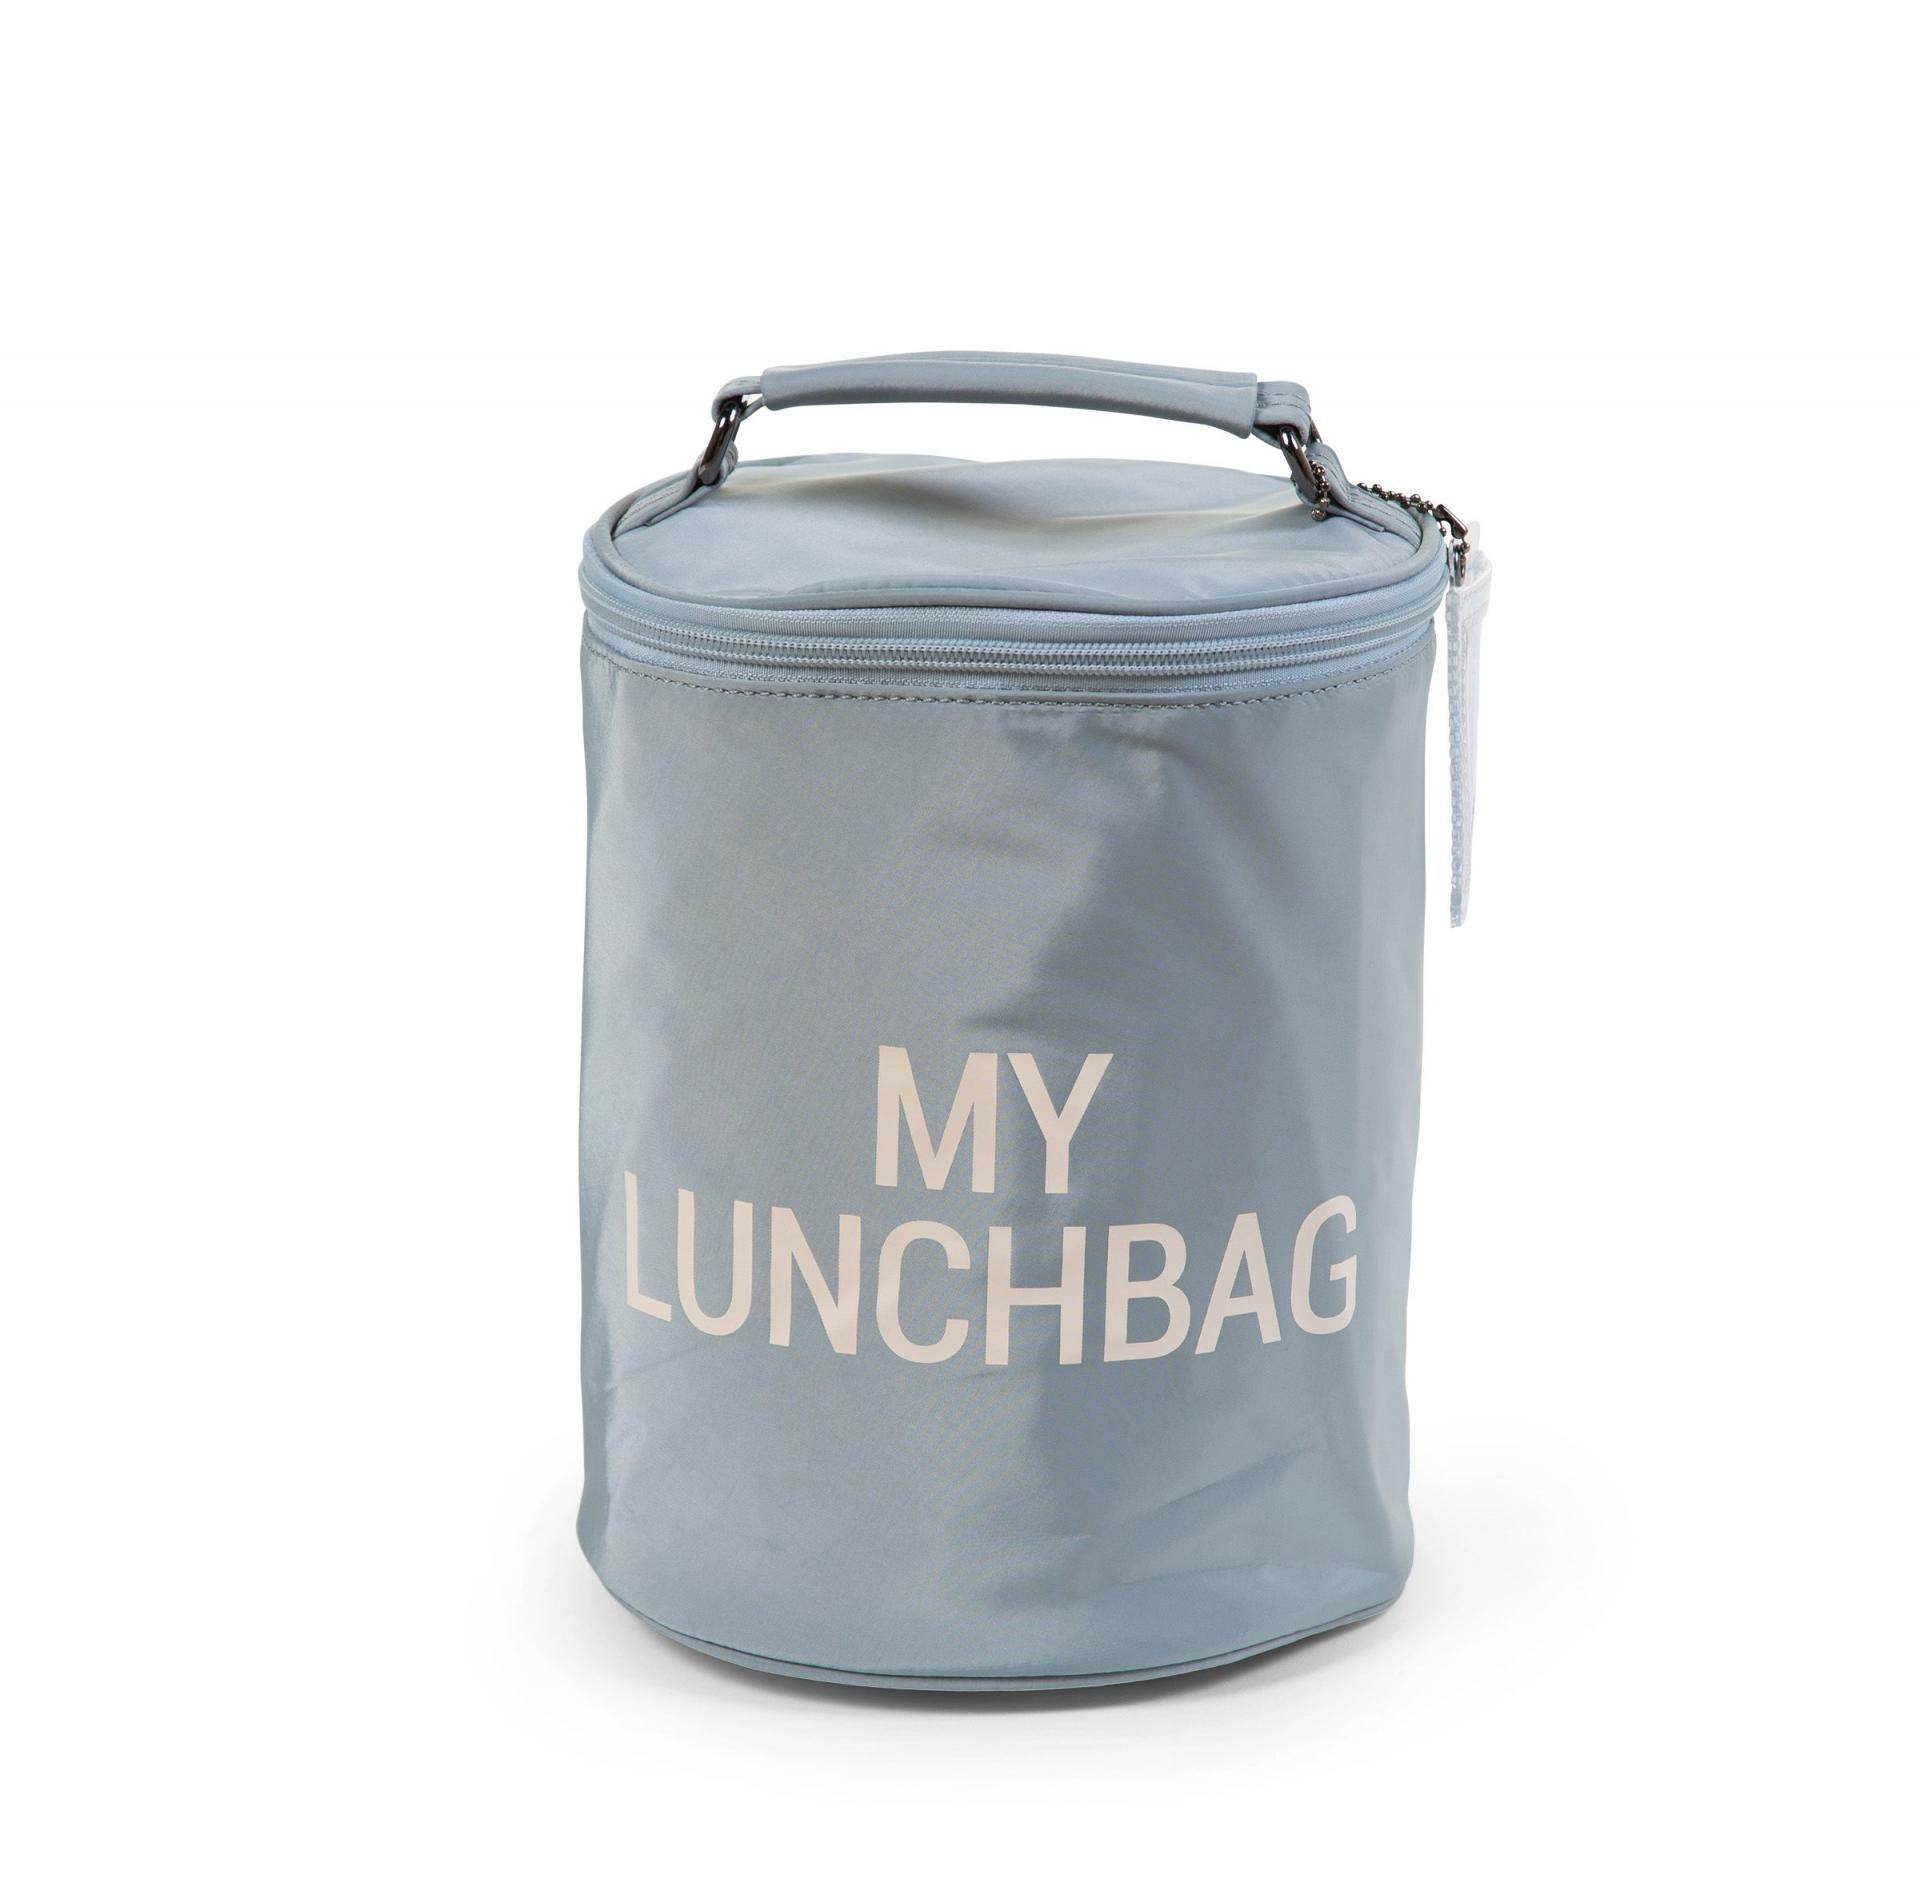 My Lunchbag - With Insulation Lining - Gris y blanco